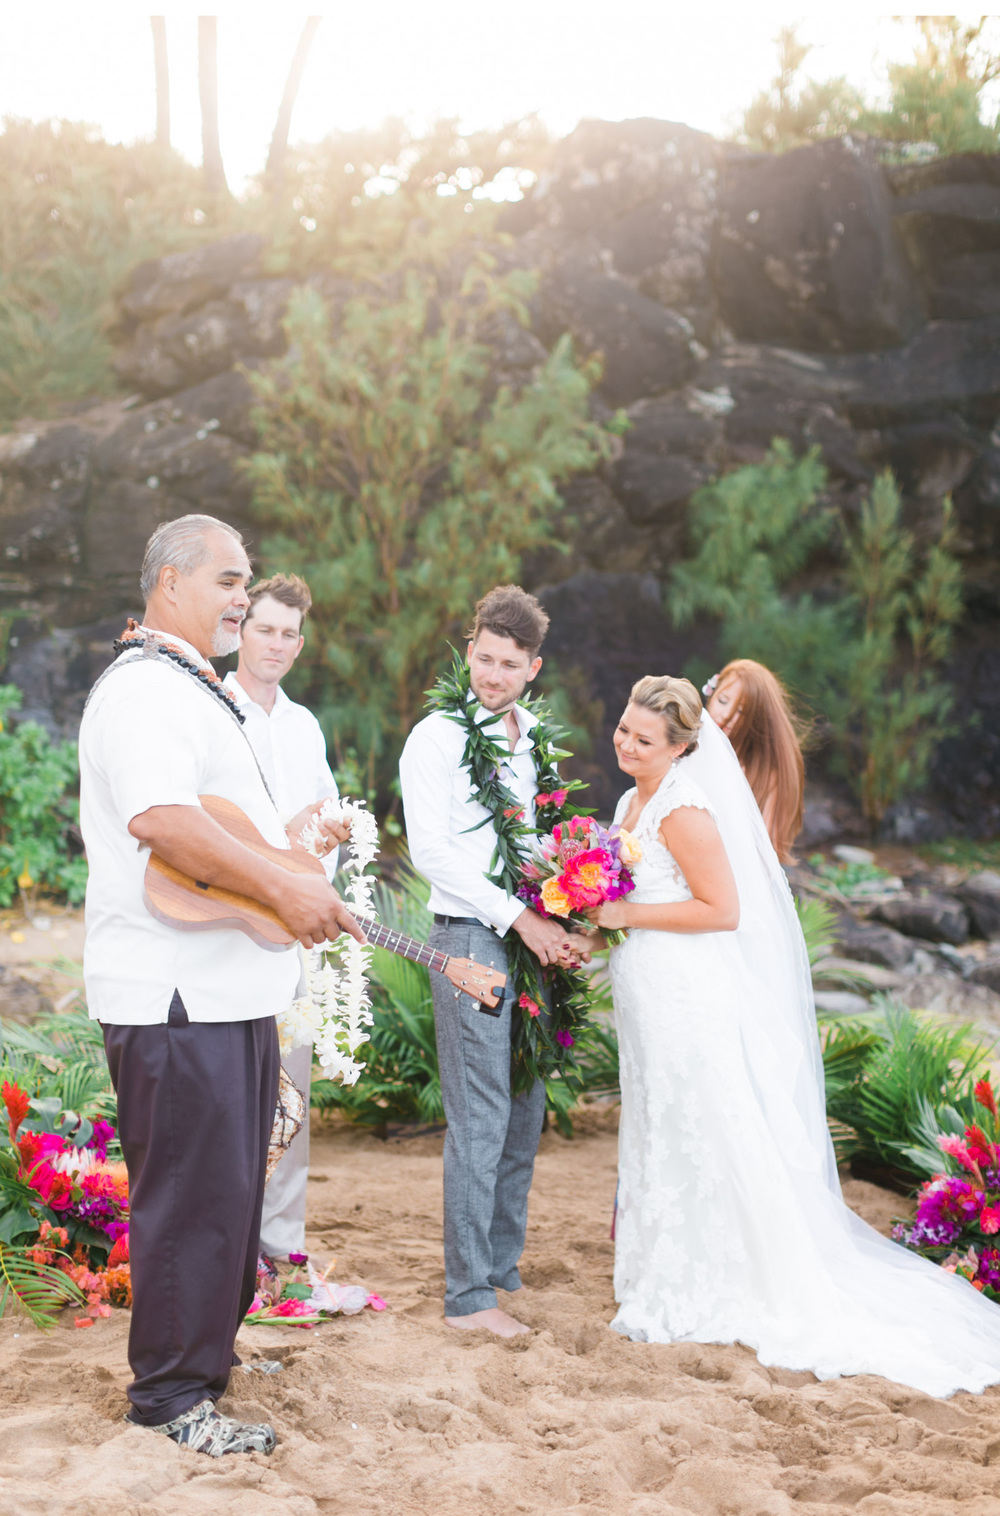 Natalie-Schutt-Photography--San-Luis-Obispo-Wedding-Photographer_04.jpg